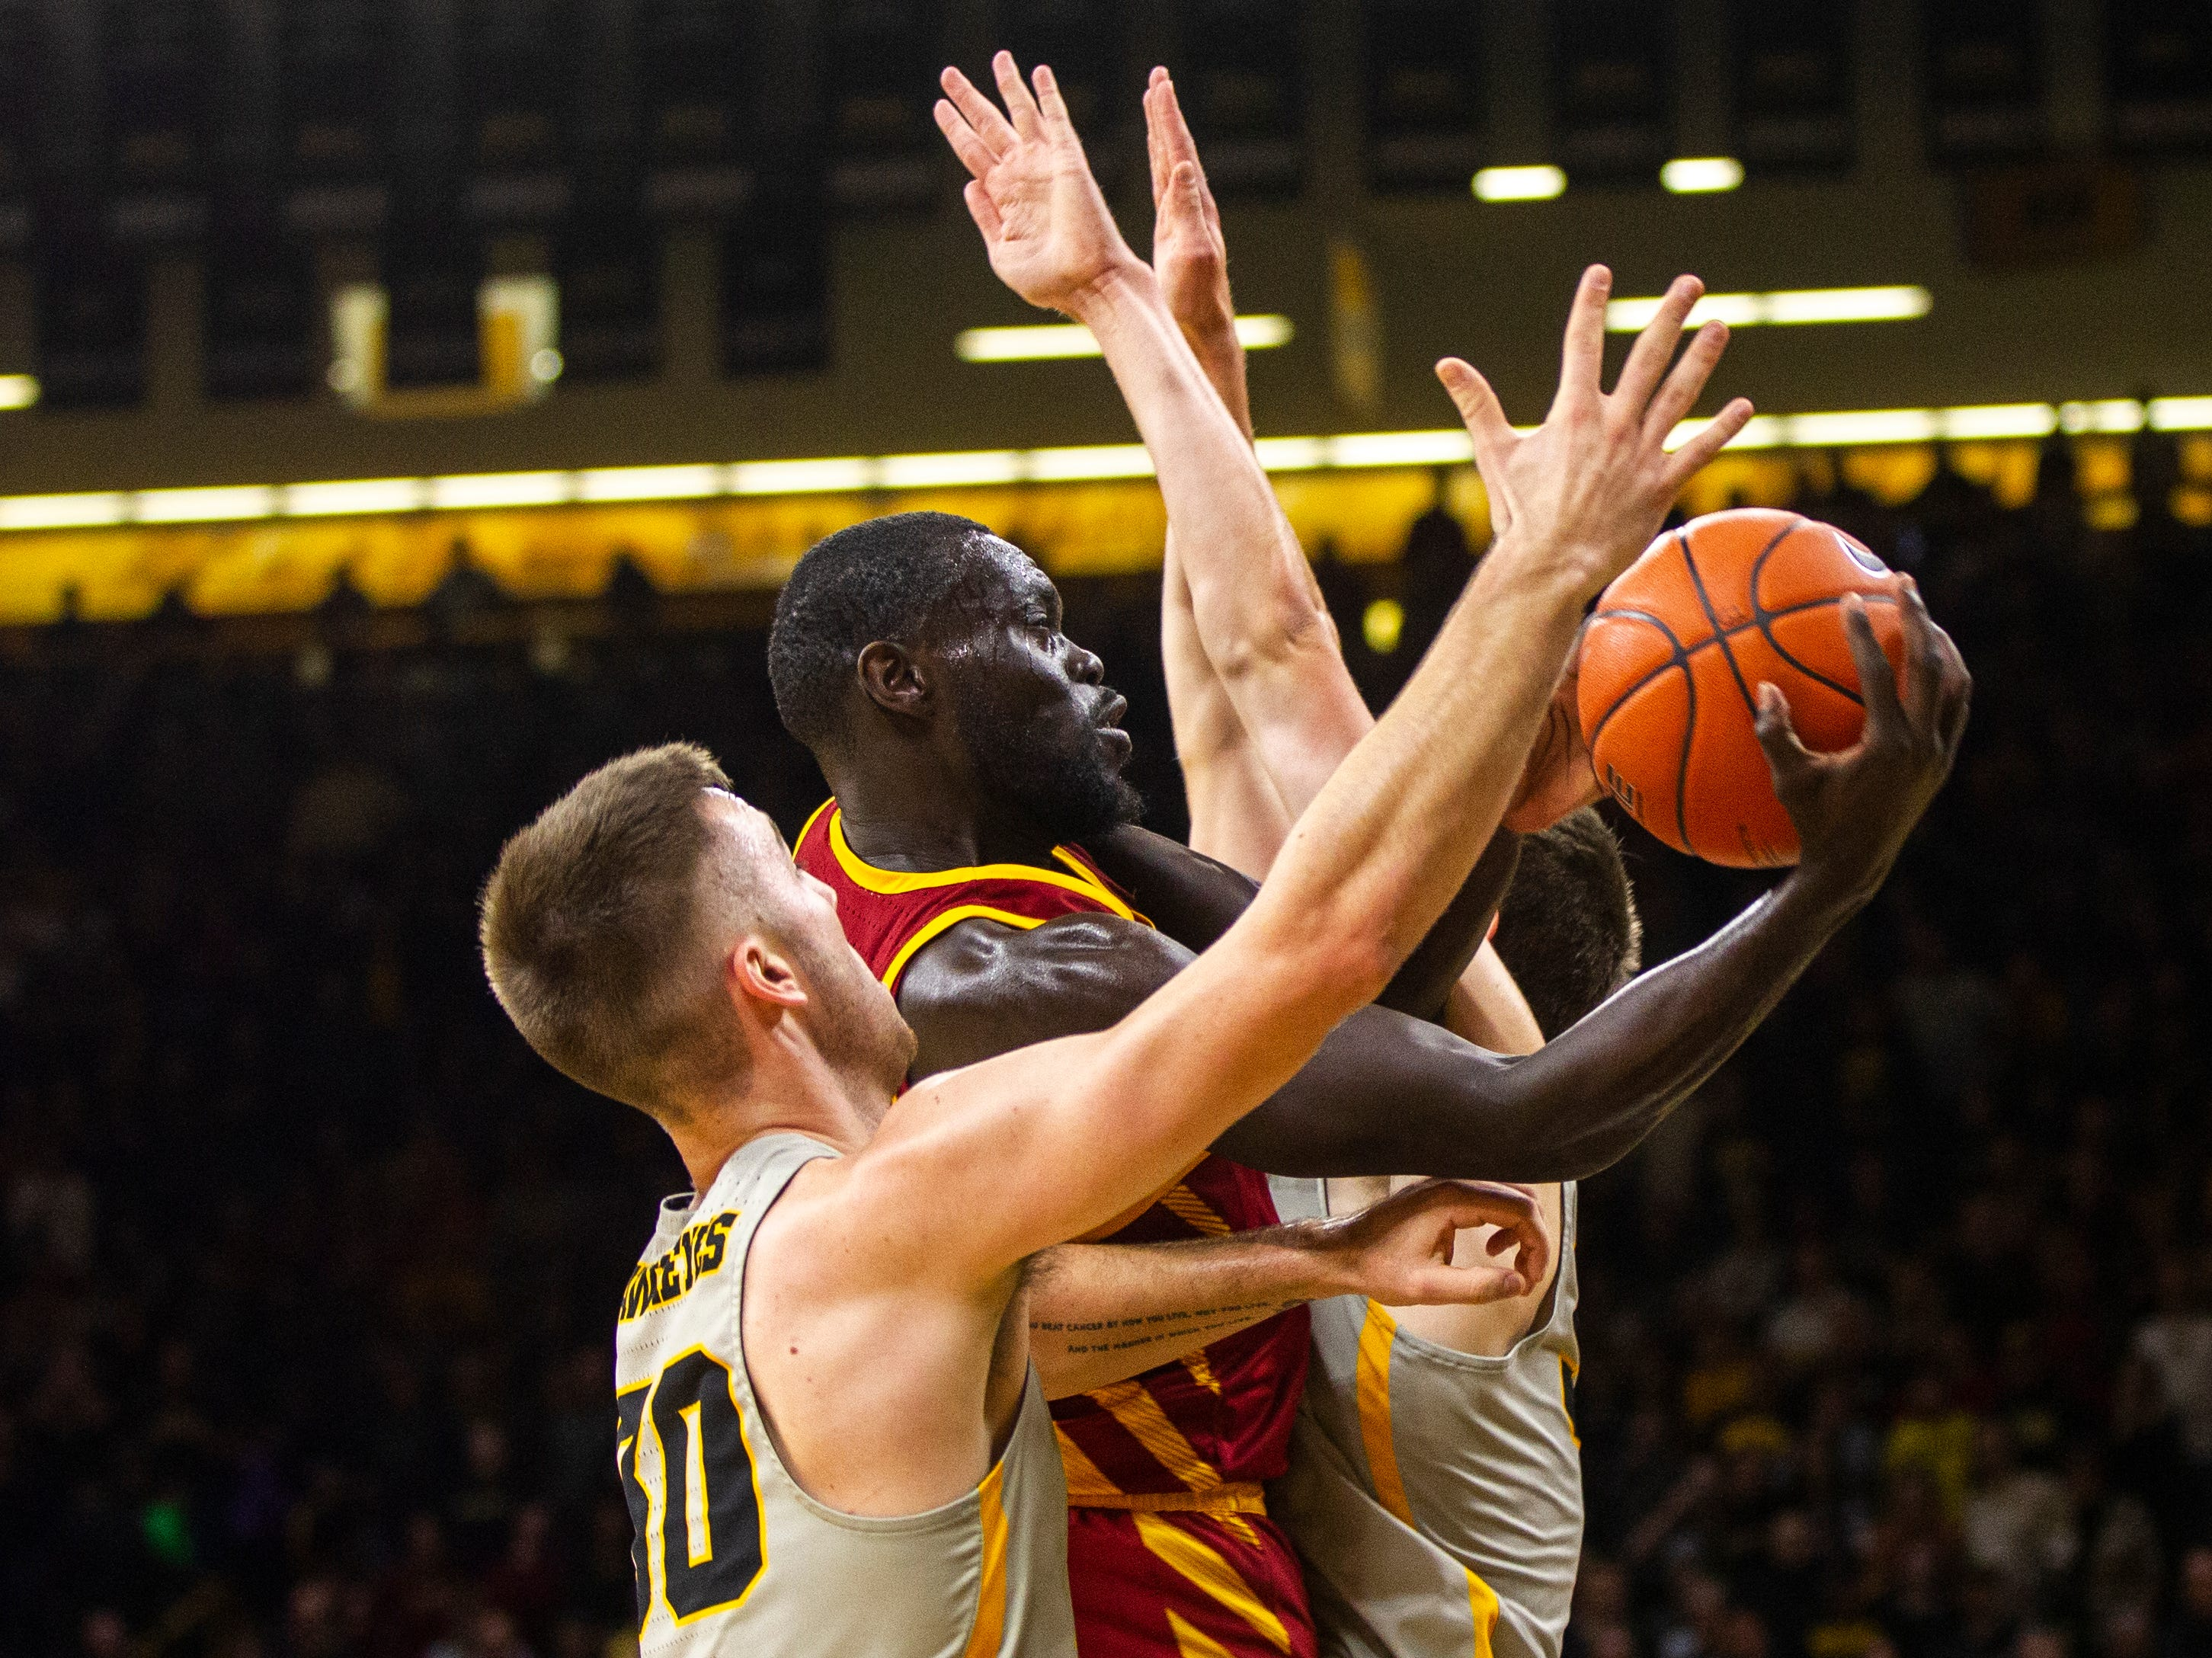 Iowa State guard Marial Shayok (3) drives to the hoop while being defended by Iowa guard Connor McCaffery (30) during a NCAA Cy-Hawk series men's basketball game on Thursday, Dec. 6, 2018, at Carver-Hawkeye Arena in Iowa City.